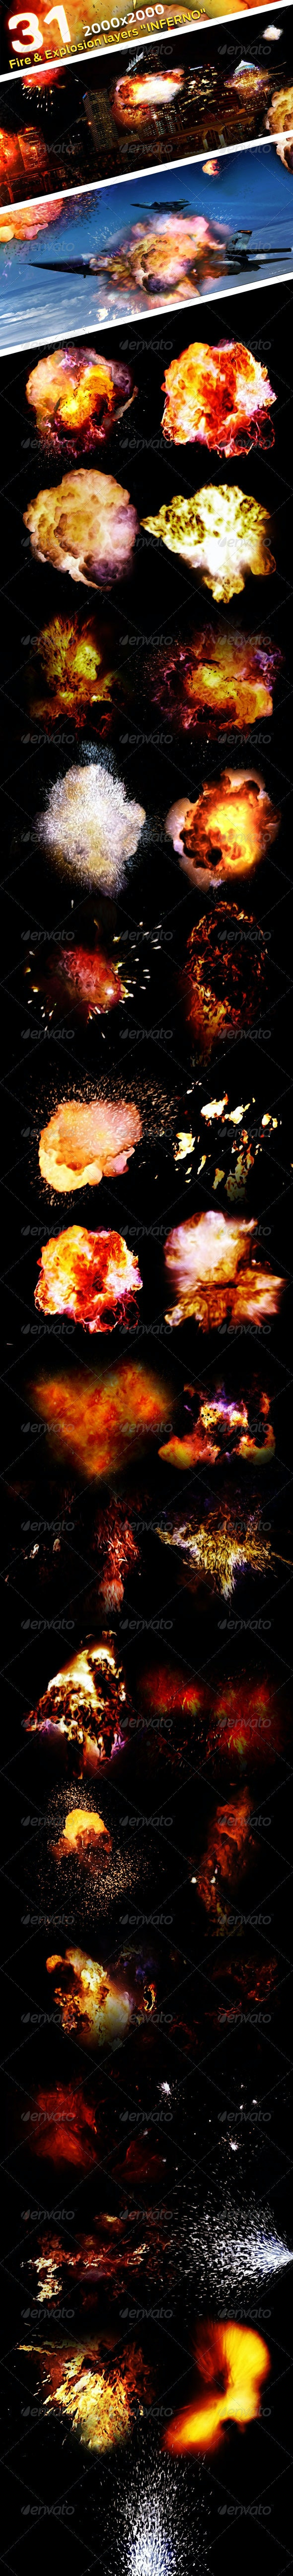 """31 Fire & Explosion Frames """"Inferno"""" - Miscellaneous Graphics"""